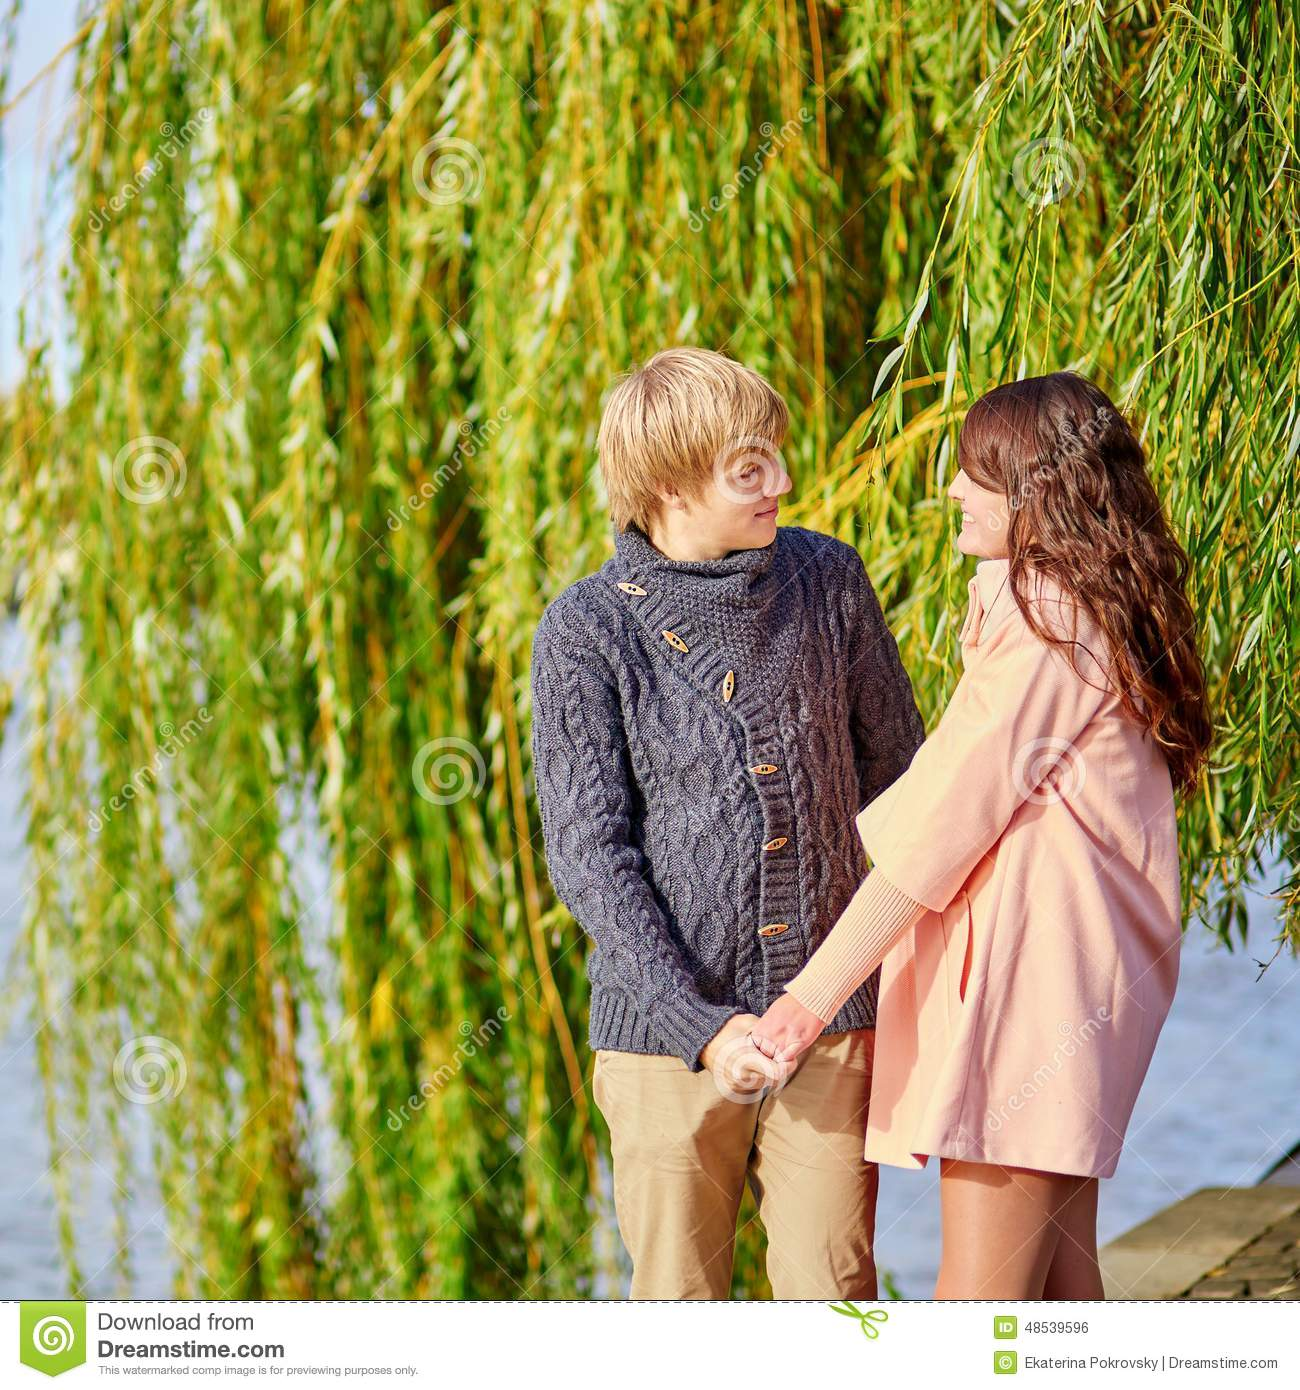 spring dale online hookup & dating What is an email lookup email lookup is a way to search for someone's email address by simply entering their name and location the best part.